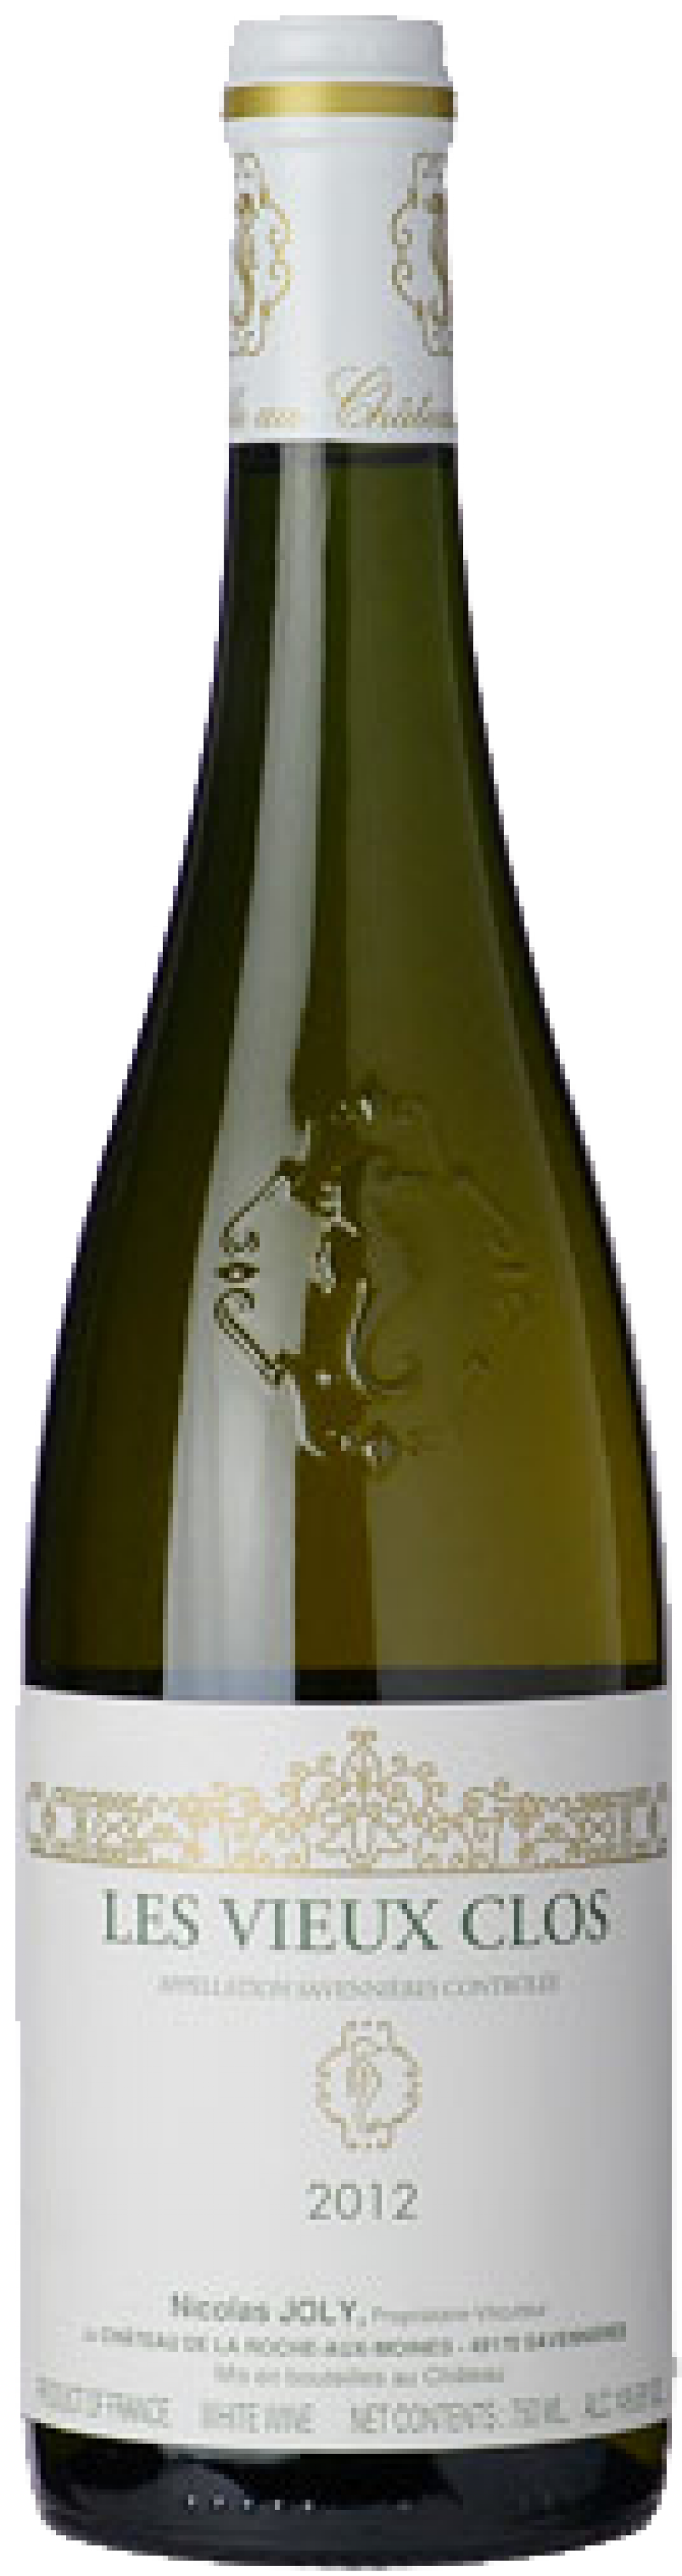 files/images/wines/France/nicolas-joly-loire/FLJC2712_pic_big.png